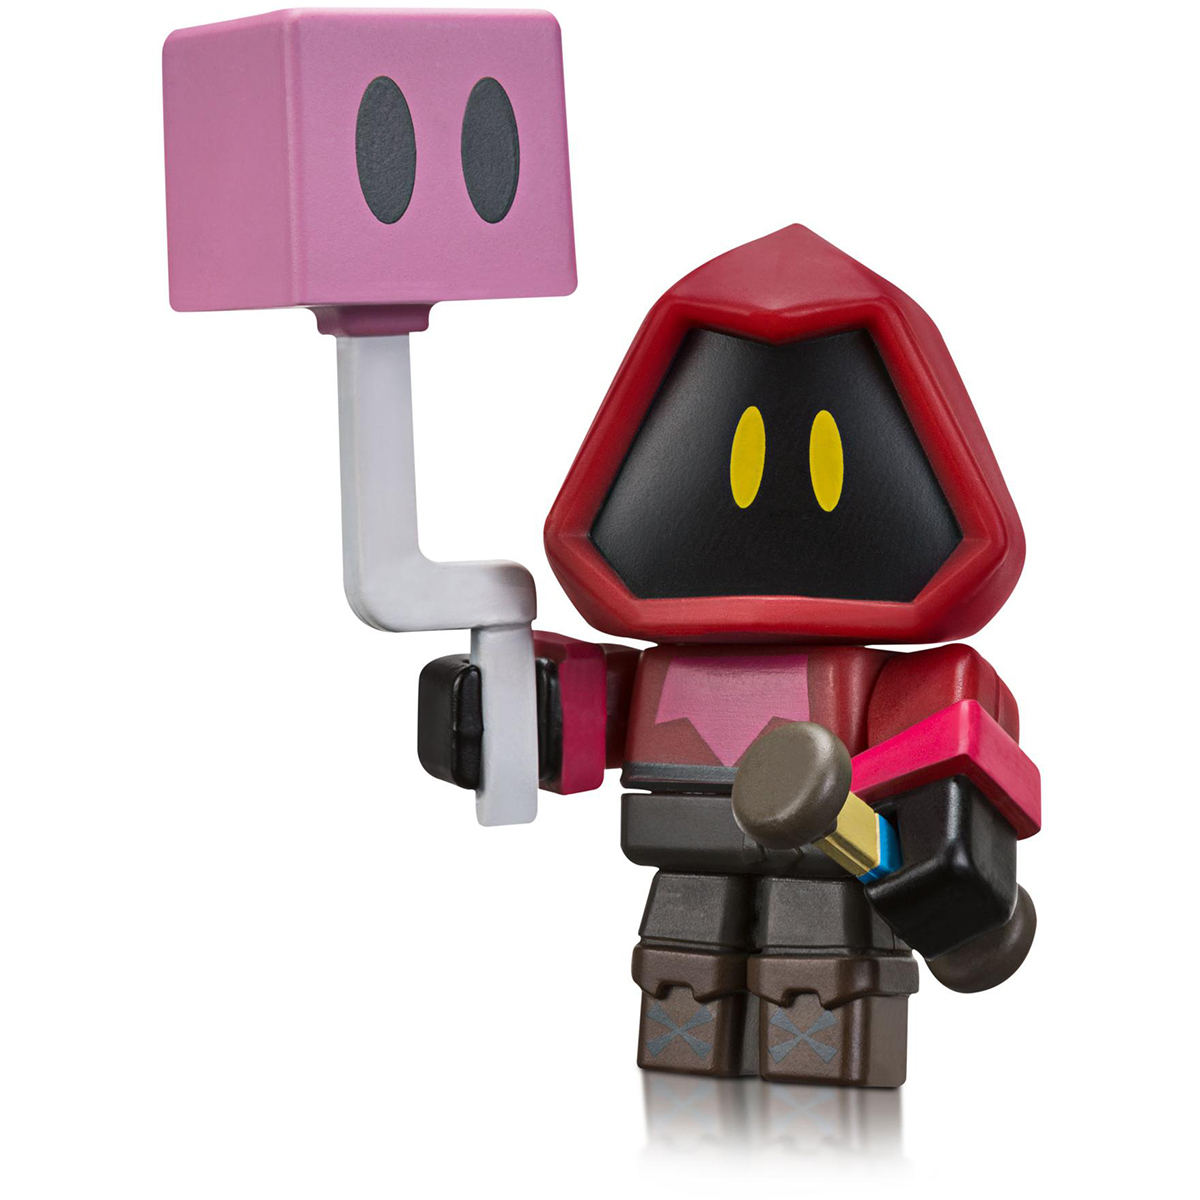 Figurina Roblox - Quest Minion